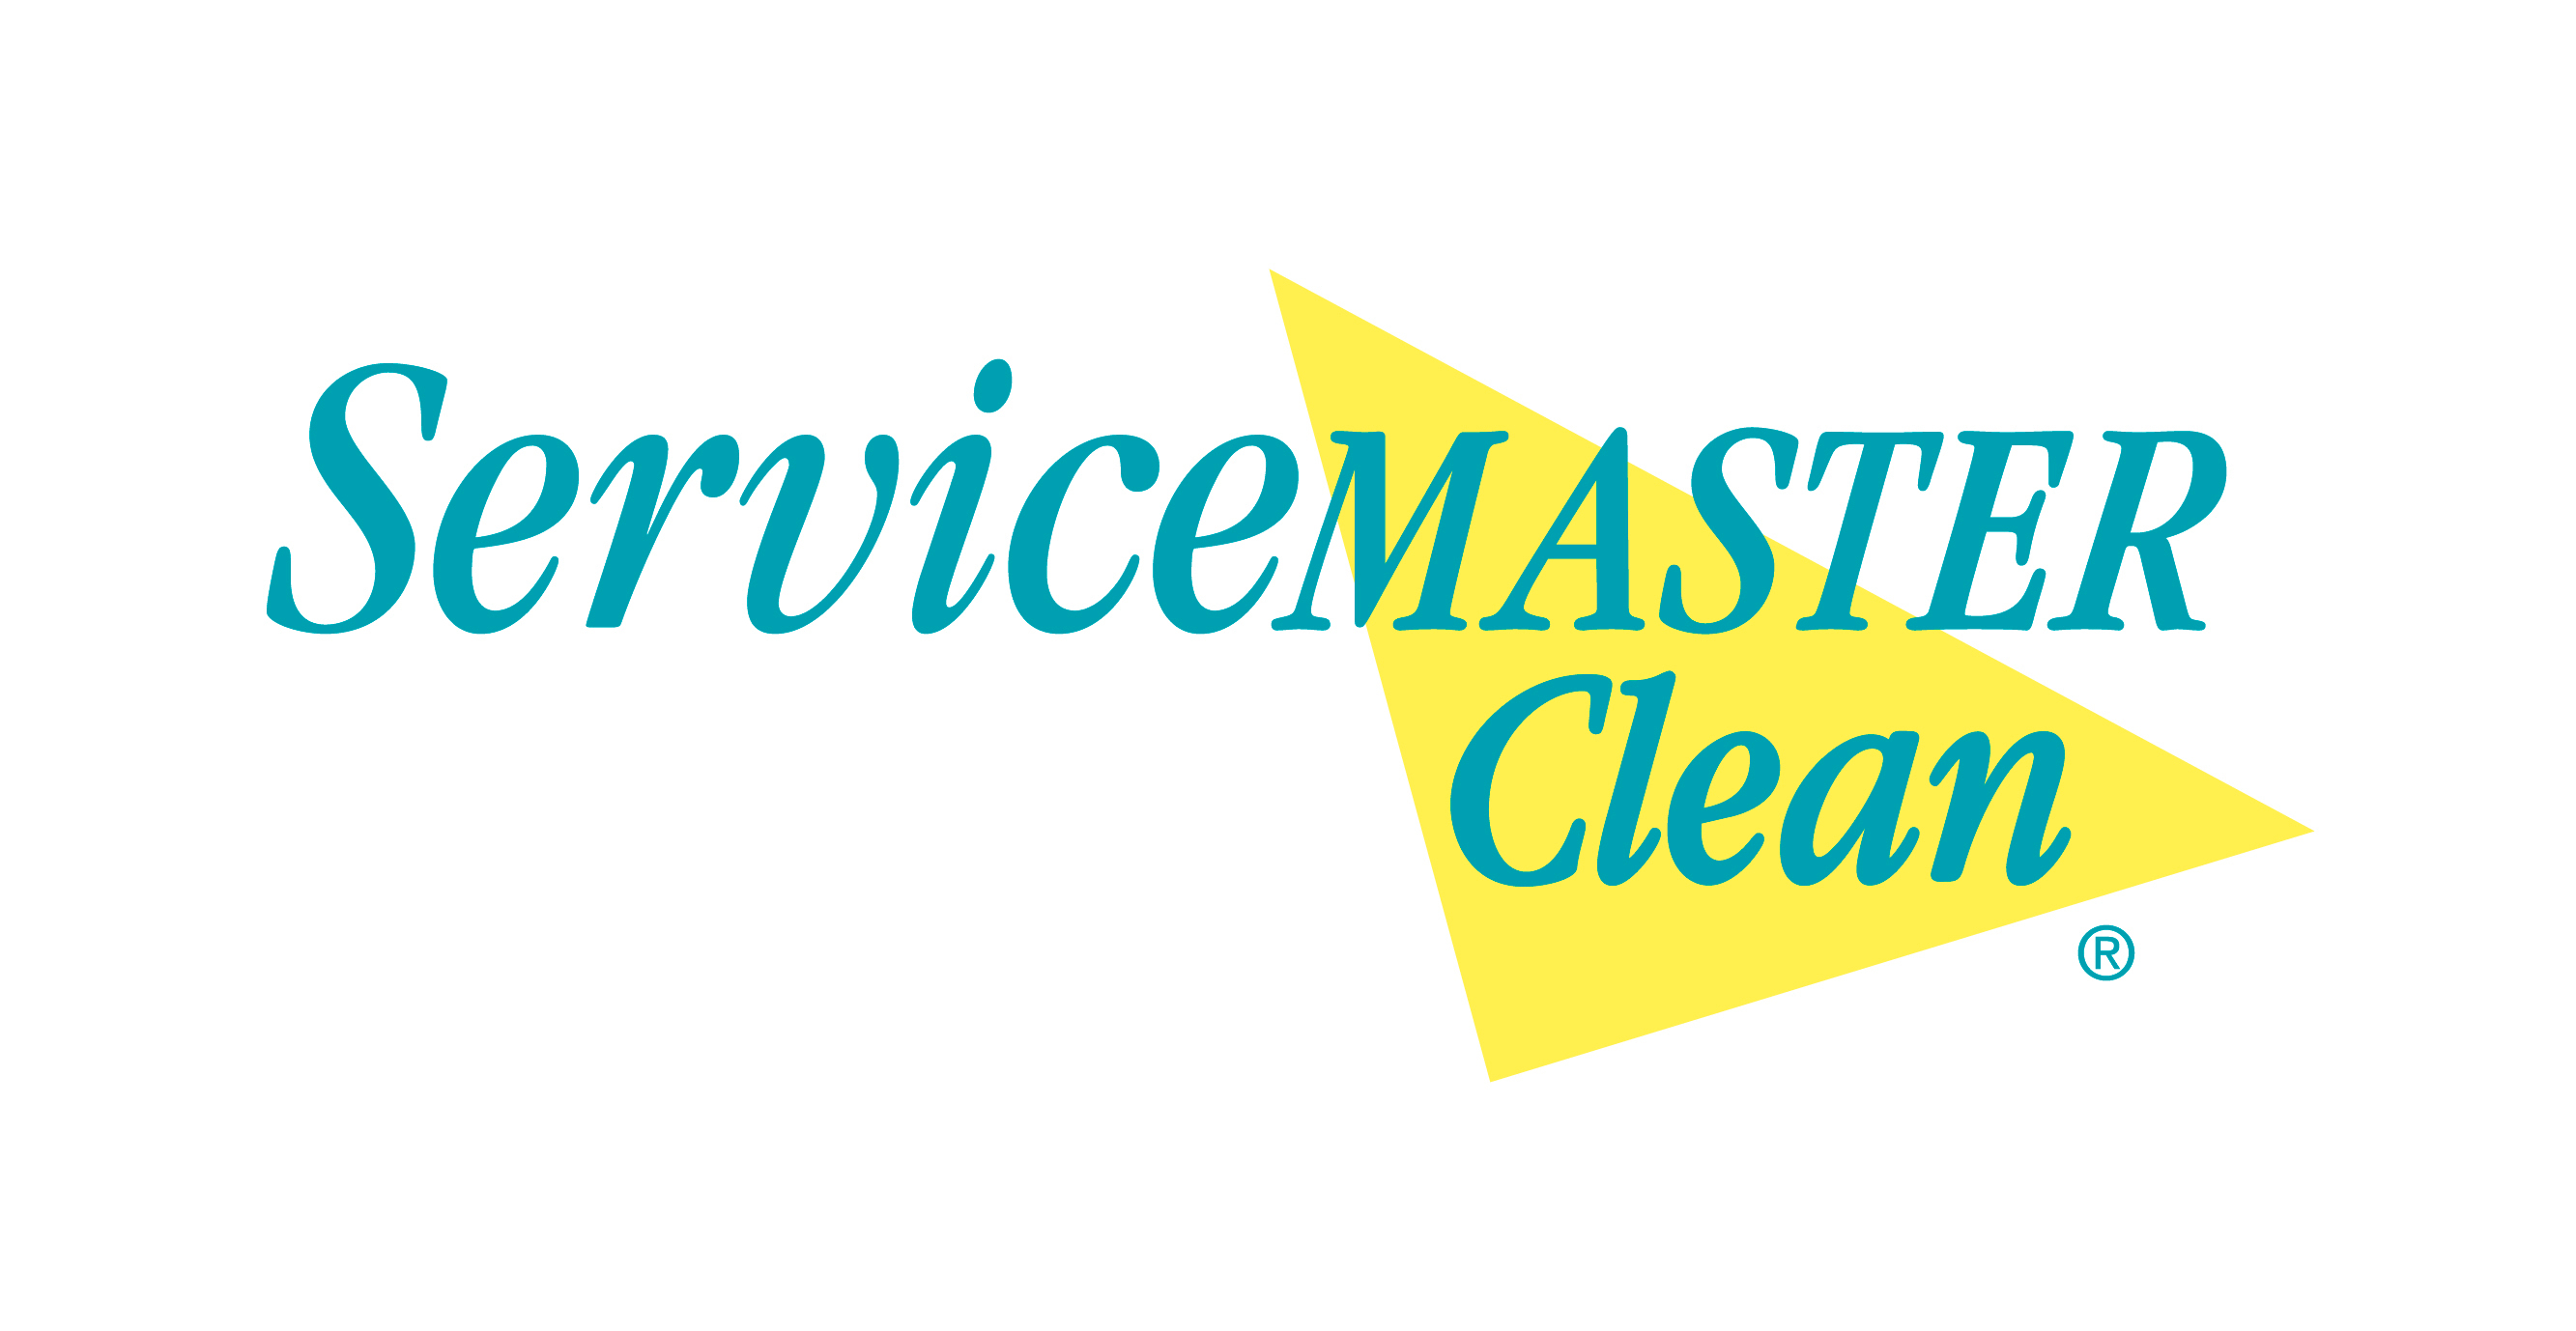 ServiceMaster Cleaning and Restoration by Clean in a Wink image 0